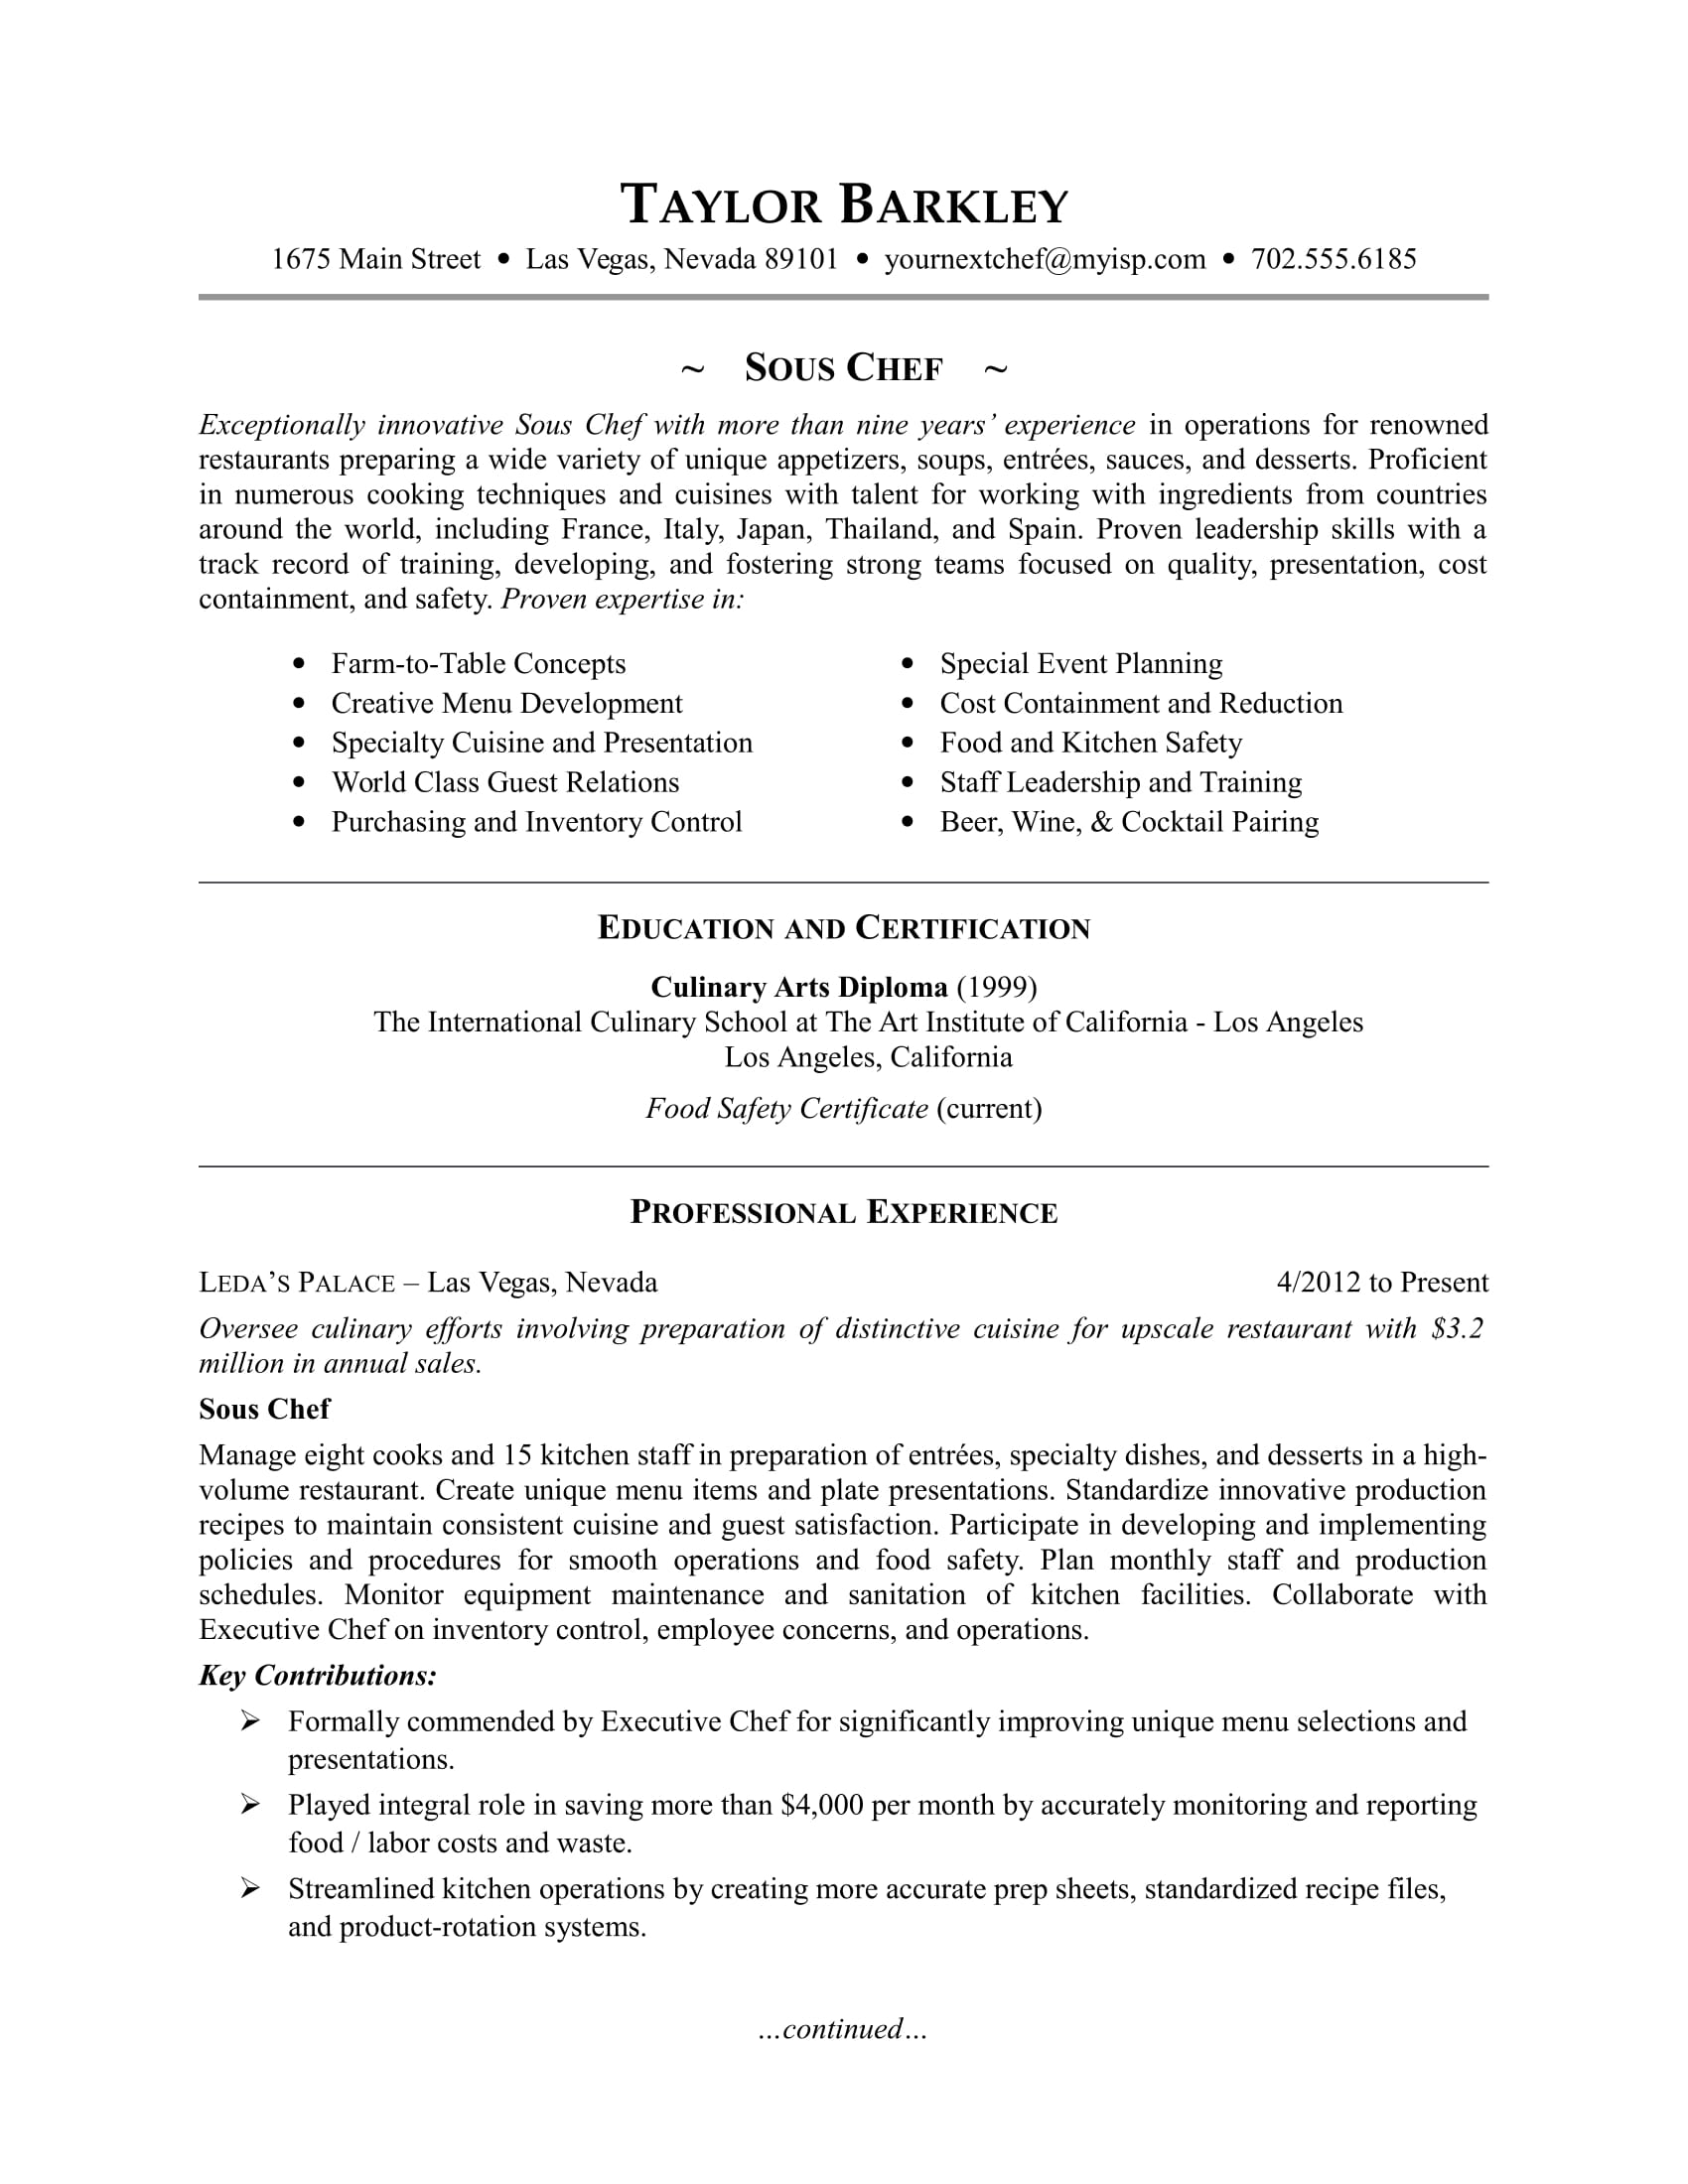 sample resume for a sous chef - Resume Sample For Cook